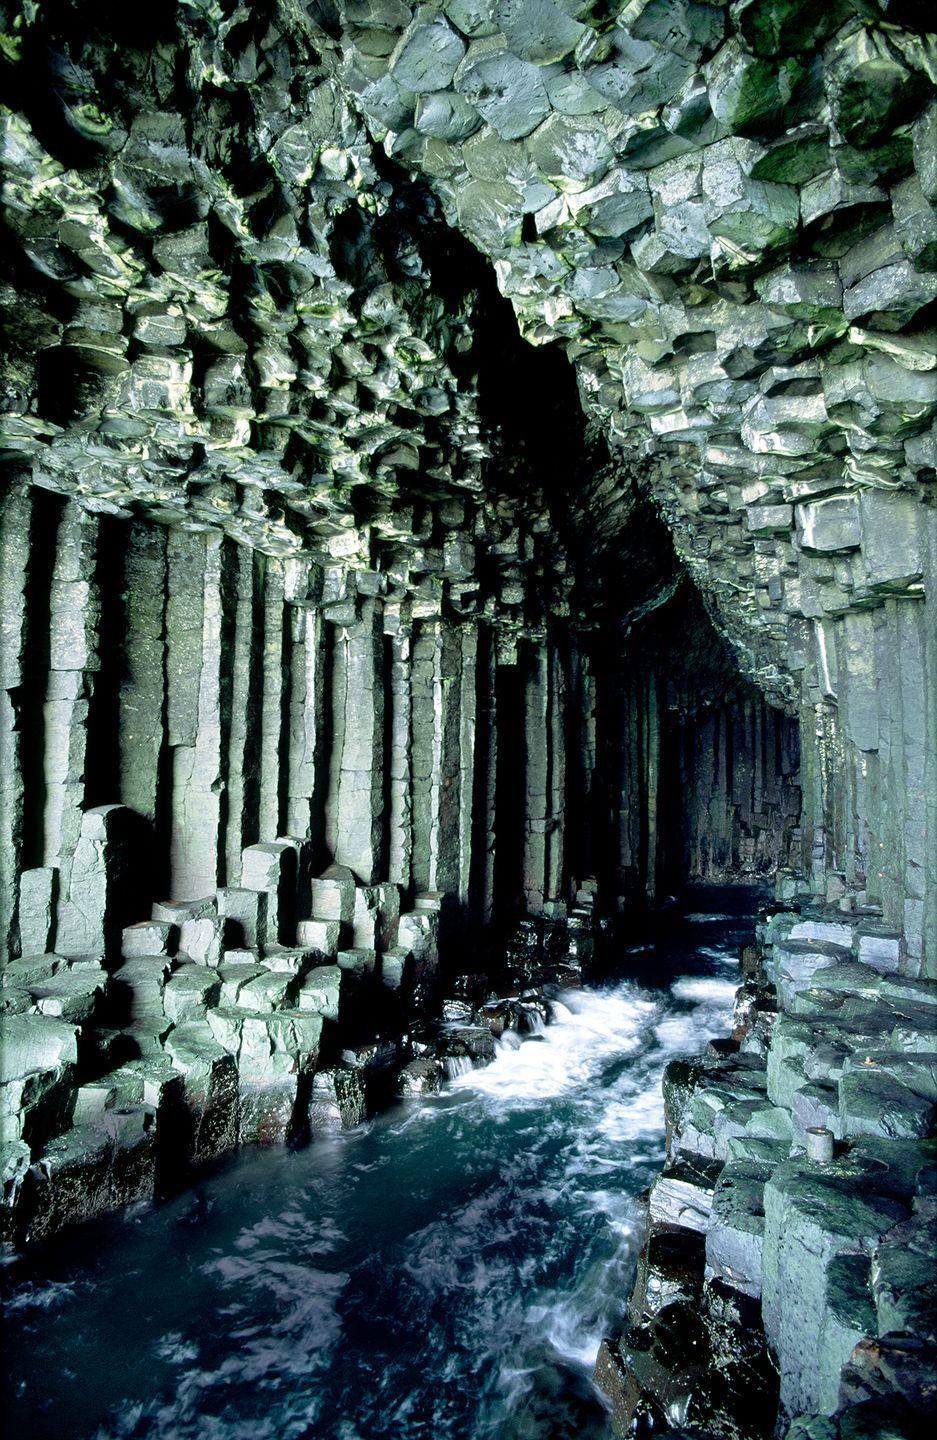 """<p>Beyond the entrance of Fingal's Cave, hexagonal columns of basalt jut out of the swirling surf. Located on the wild Isle of Staffa in the Hebrides, this otherworldly cavern was formed millions of years ago when a volcanic eruption sent lava spilling out into the sea. Known to the Celts as Uamh-Binn, or 'Cave of Melody', the grotto is famed for its natural acoustics – crashing waves reverberating around the walls like a coastal cathedral. A source of inspiration for everyone from composer Felix Mendelssohn to the members of Pink Floyd, this natural wonder also appeared in Jules Verne's Journey to the Centre of the World.</p><p><a class=""""link rapid-noclick-resp"""" href=""""https://www.visitscotland.com/see-do/unique-experiences-map/seeing-a-unique-cave/"""" rel=""""nofollow noopener"""" target=""""_blank"""" data-ylk=""""slk:MORE INFO"""">MORE INFO</a></p>"""